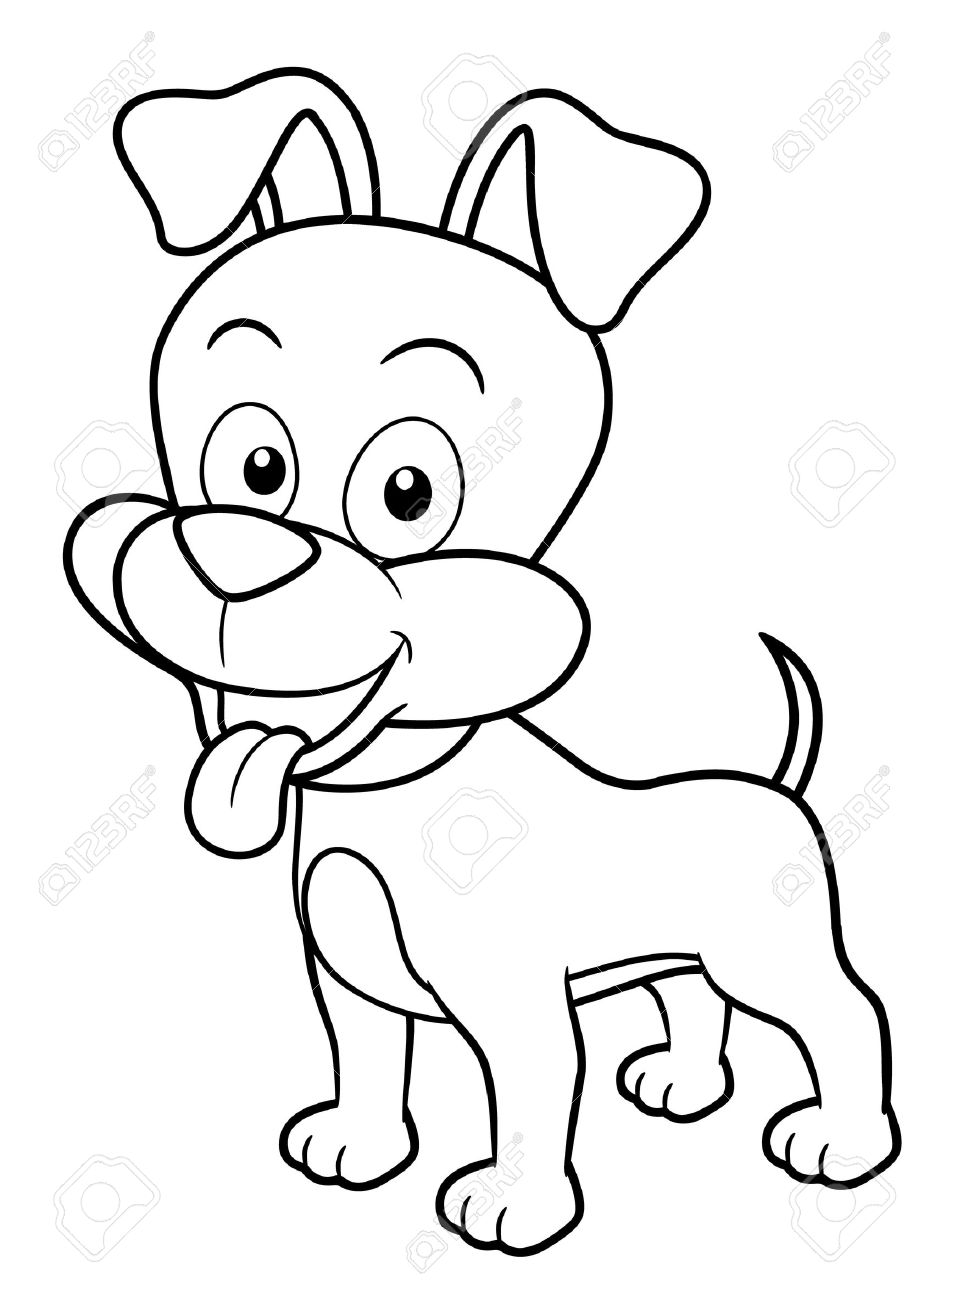 Illustration Of Cartoon Dog - Coloring Book Royalty Free Cliparts ...